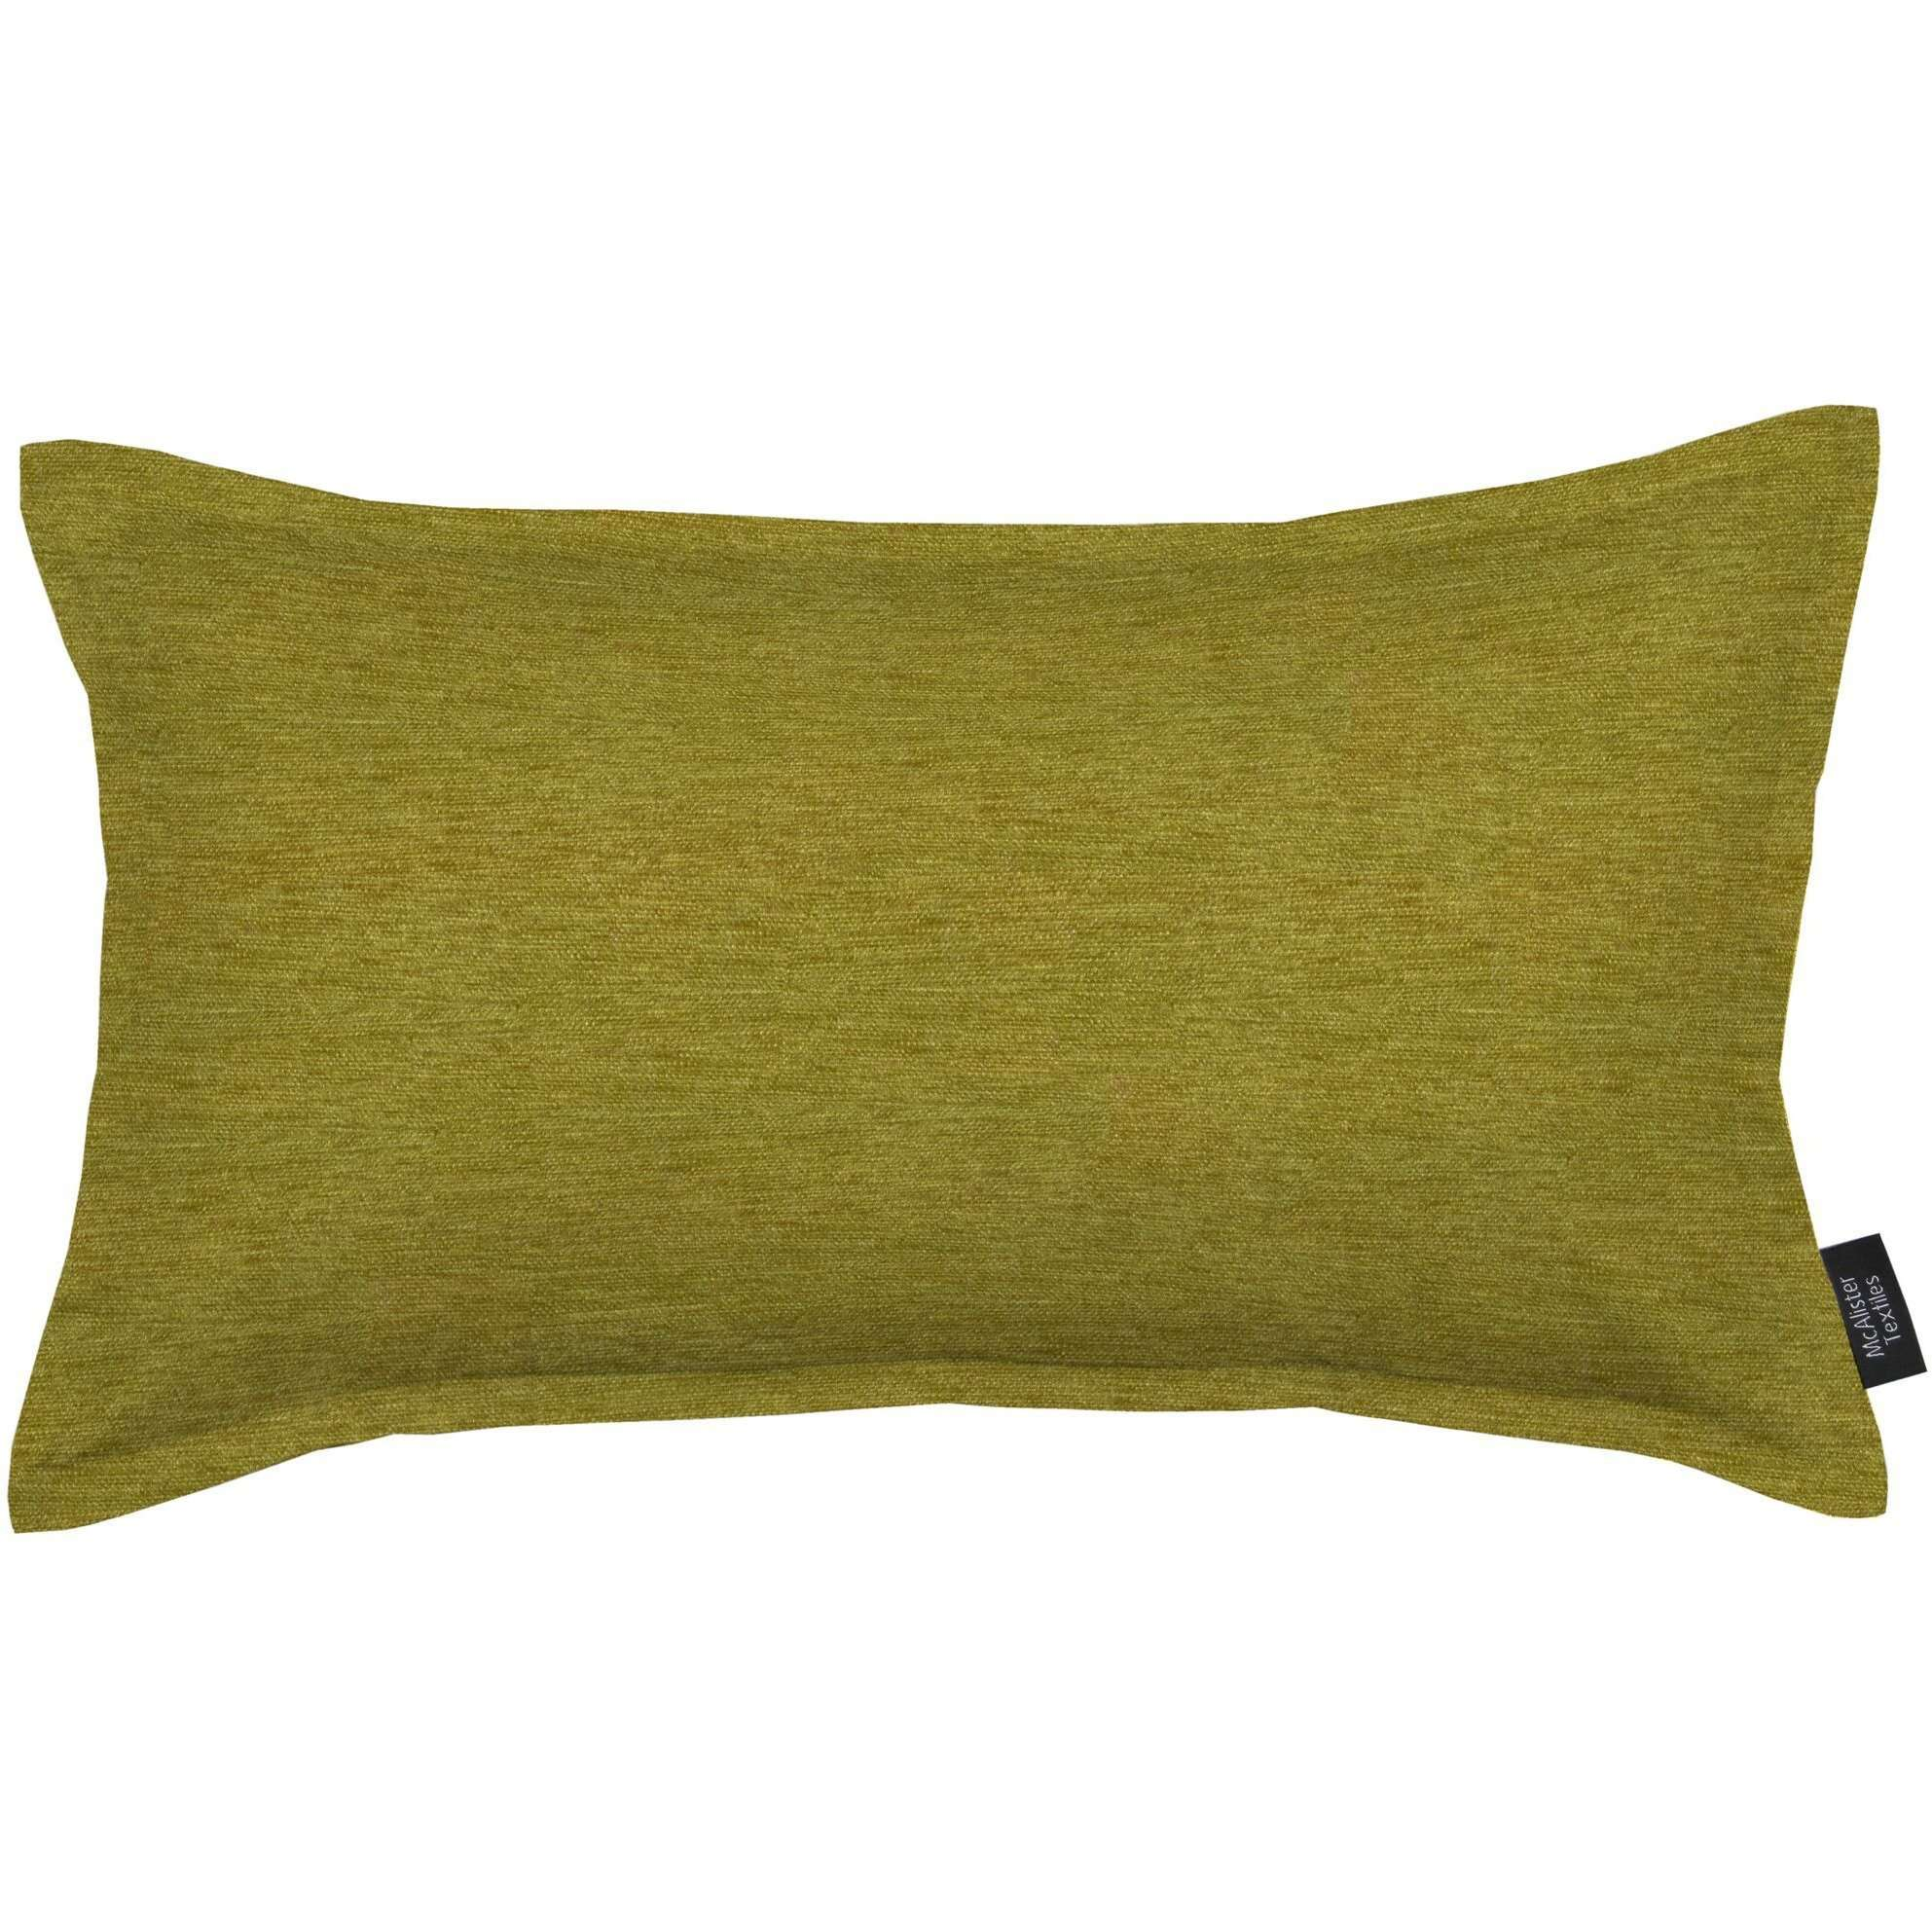 McAlister Textiles Plain Chenille Lime Green Pillow Pillow Cover Only 50cm x 30cm